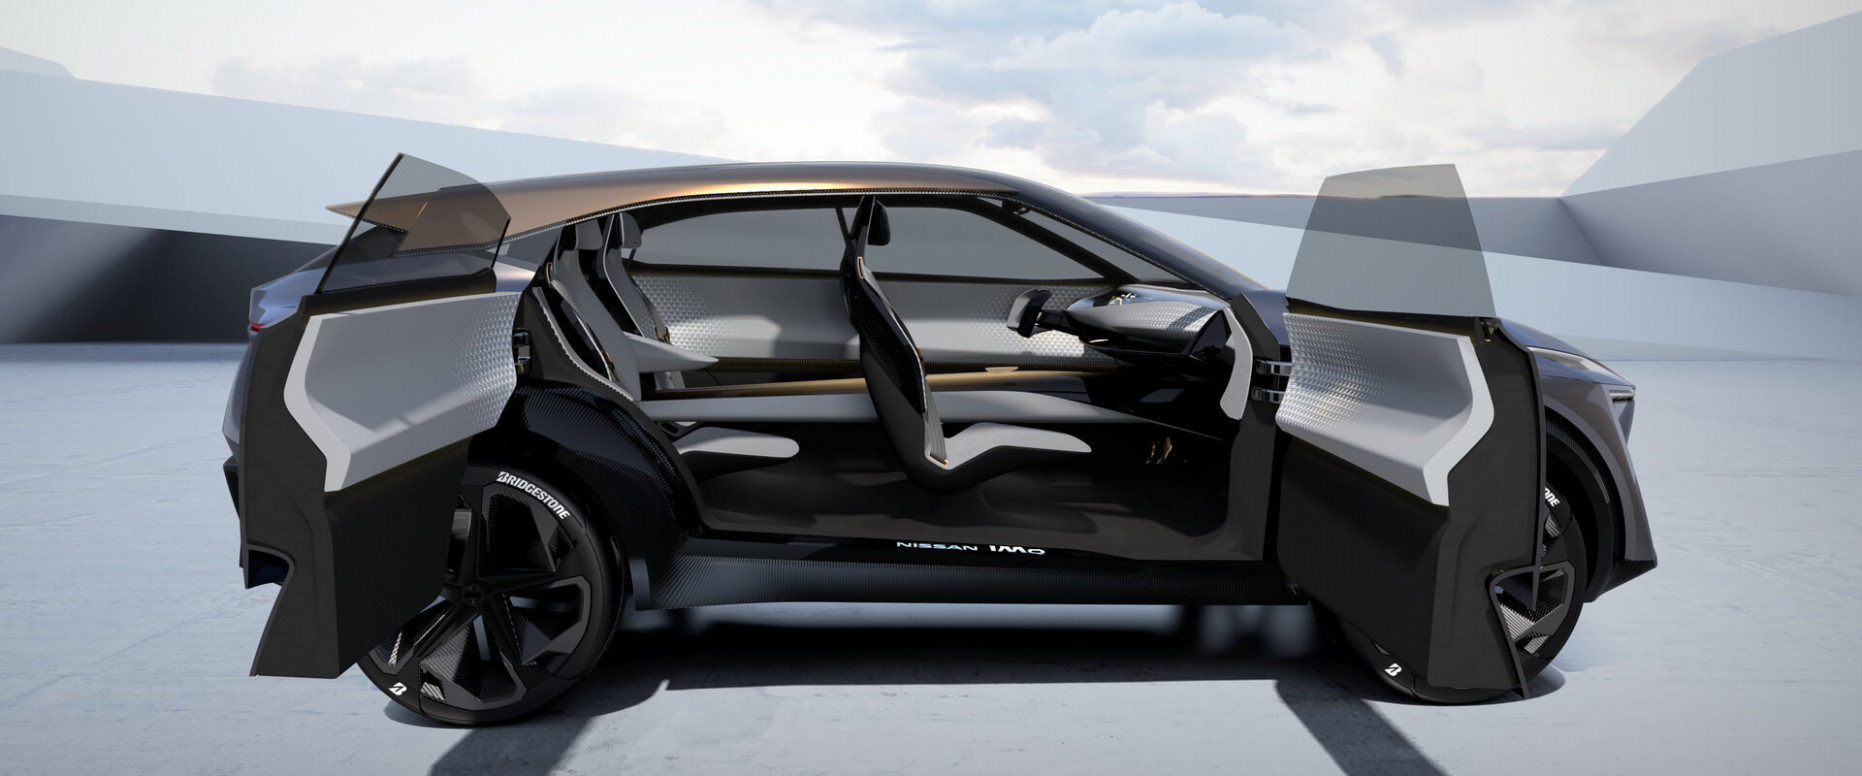 New Review Nissan Concept 2022 Interior